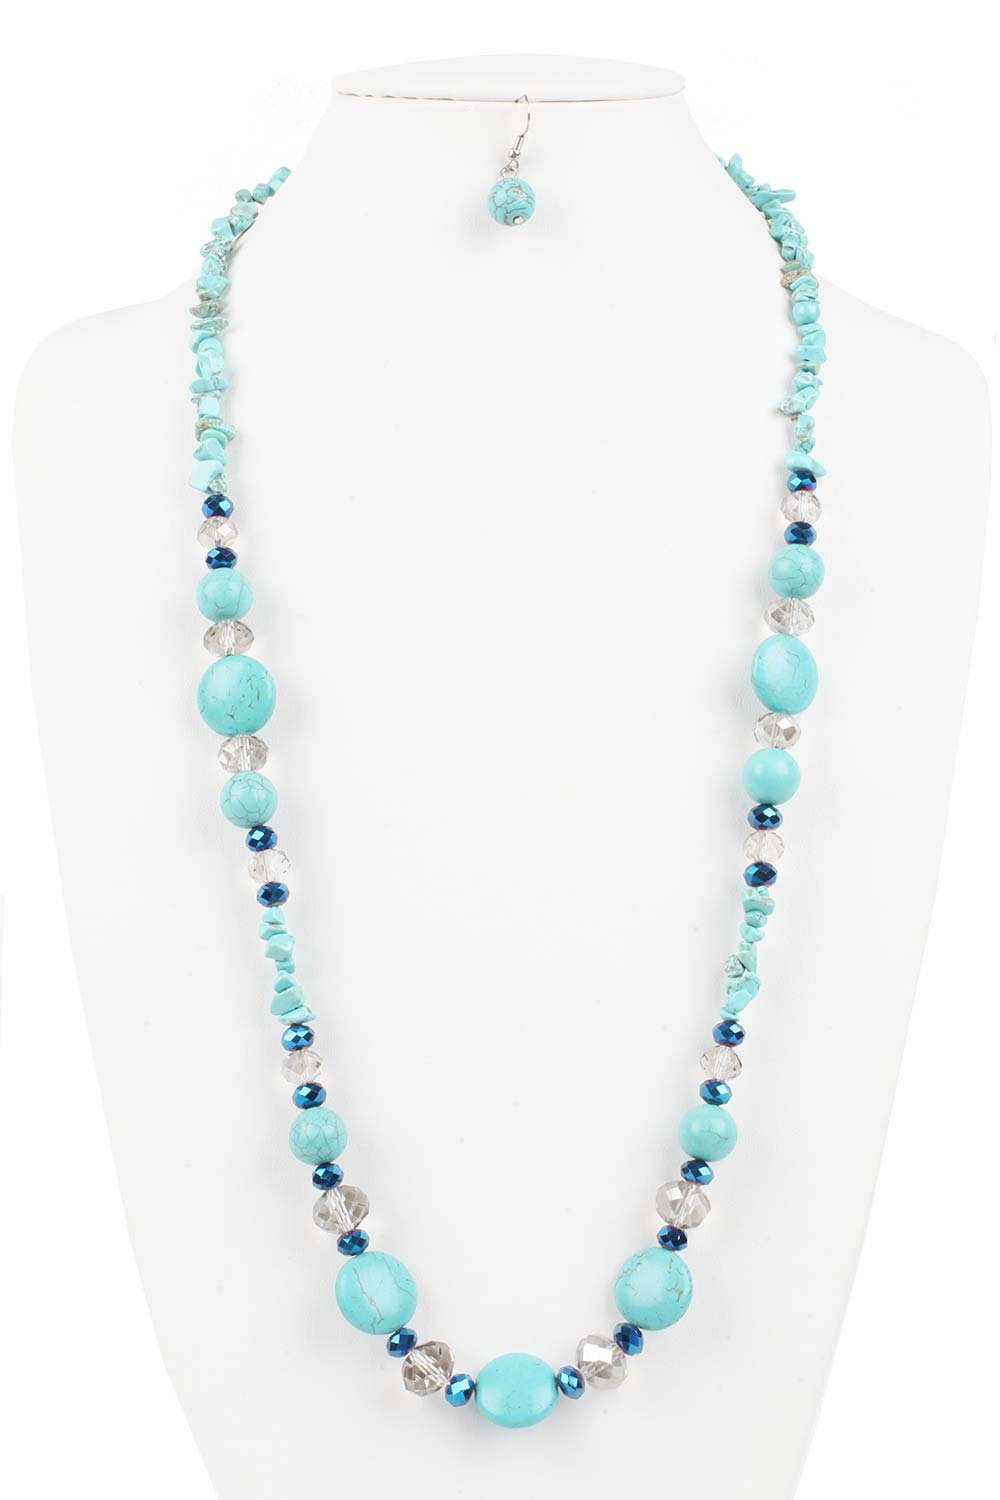 Judys Fashion Mix Styles Gemstone Turquoise Beads Long Necklace with Earring